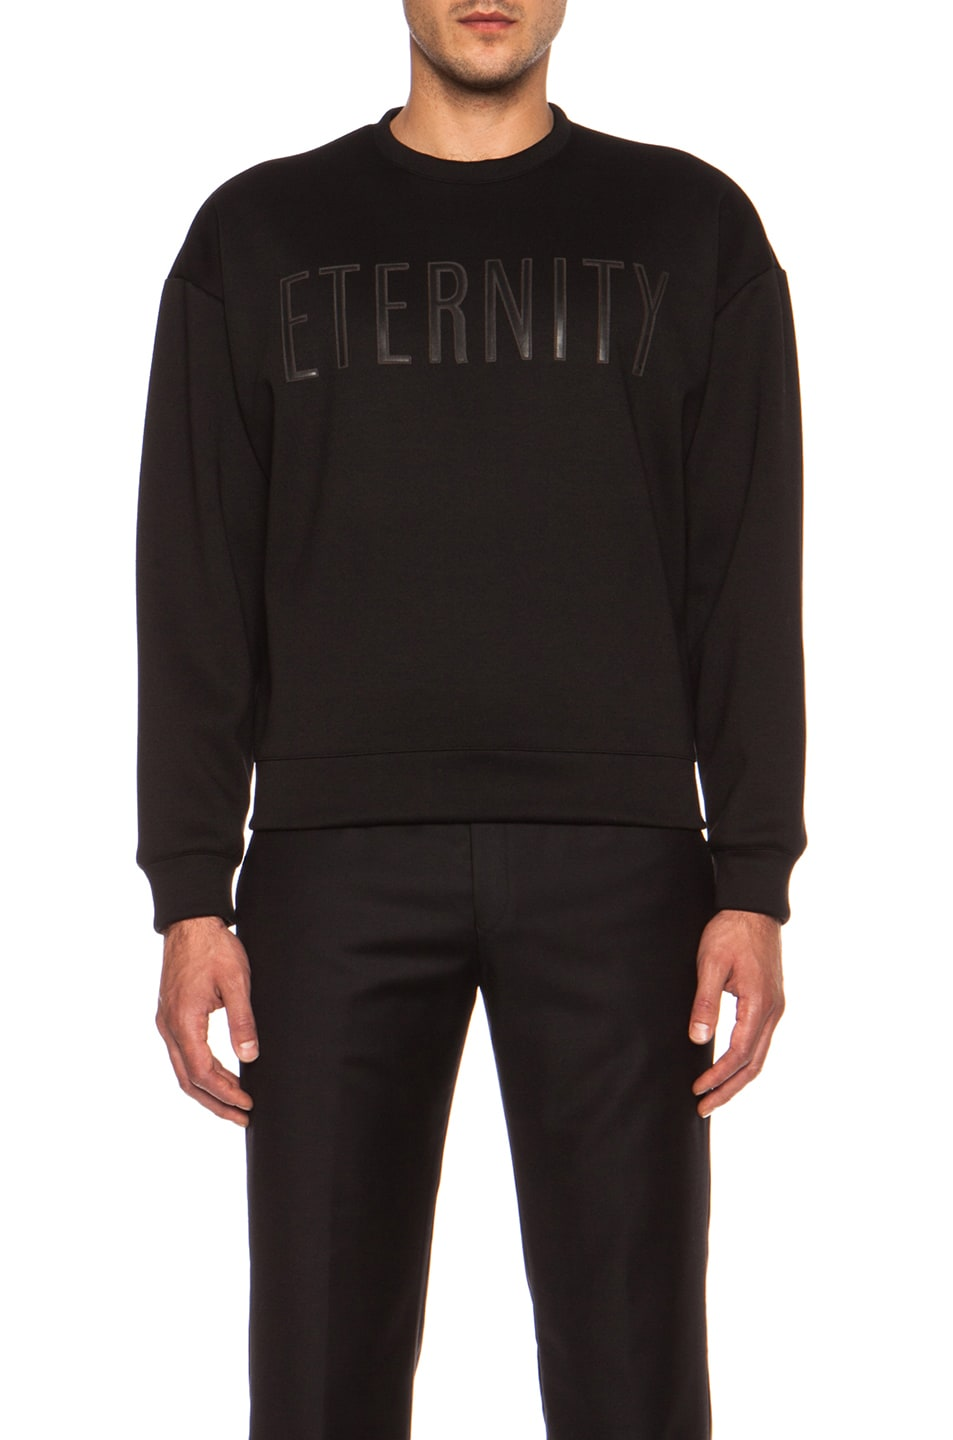 Image 1 of Calvin Klein Collection Eternity Poly-Blend Sweatshirt in Black